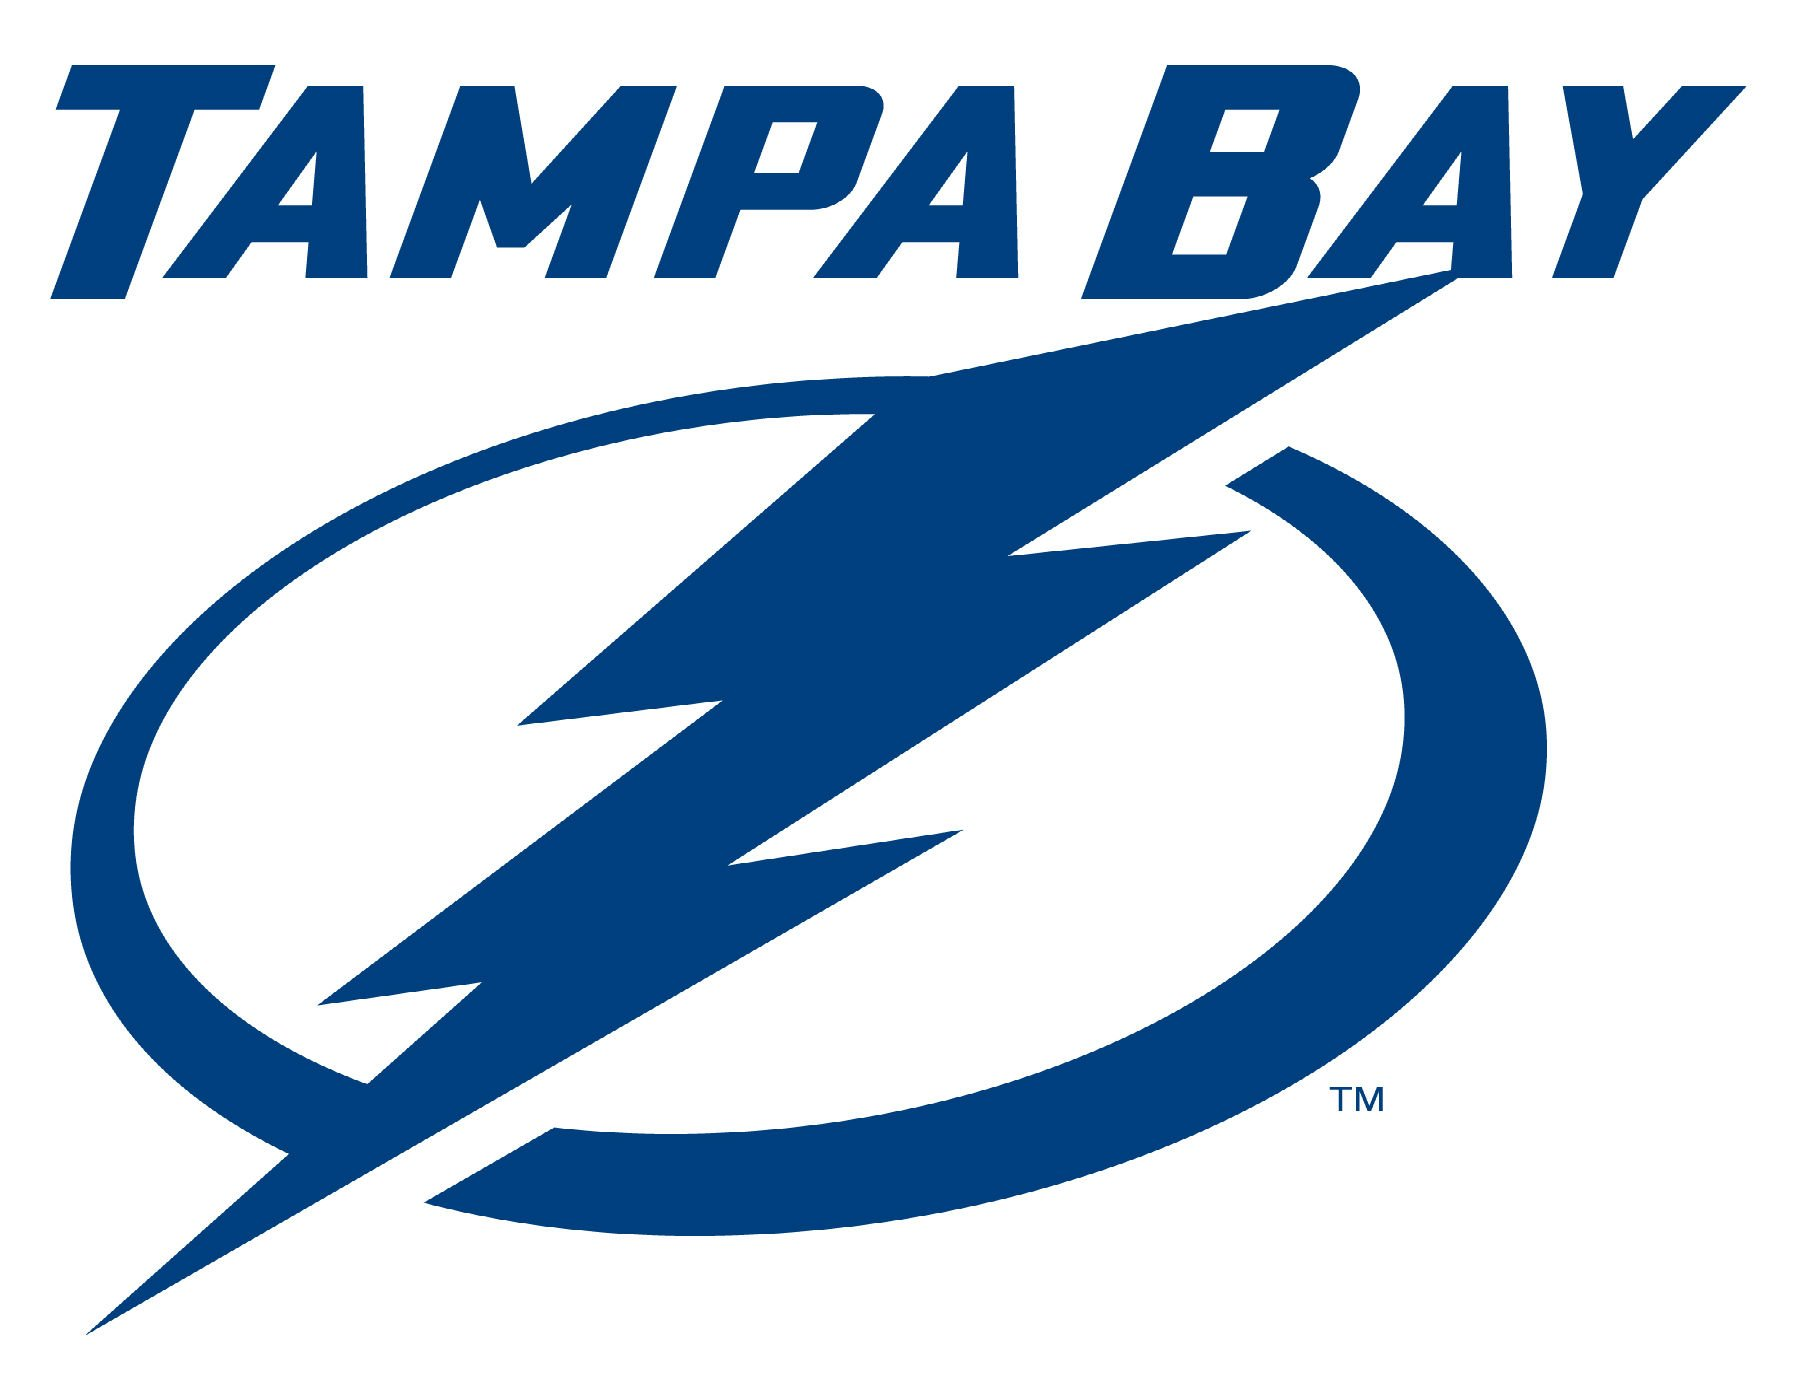 TAMPA BAY LIGHTNING nhl hockey 23 wallpaper 1800x1400 349222 1800x1400